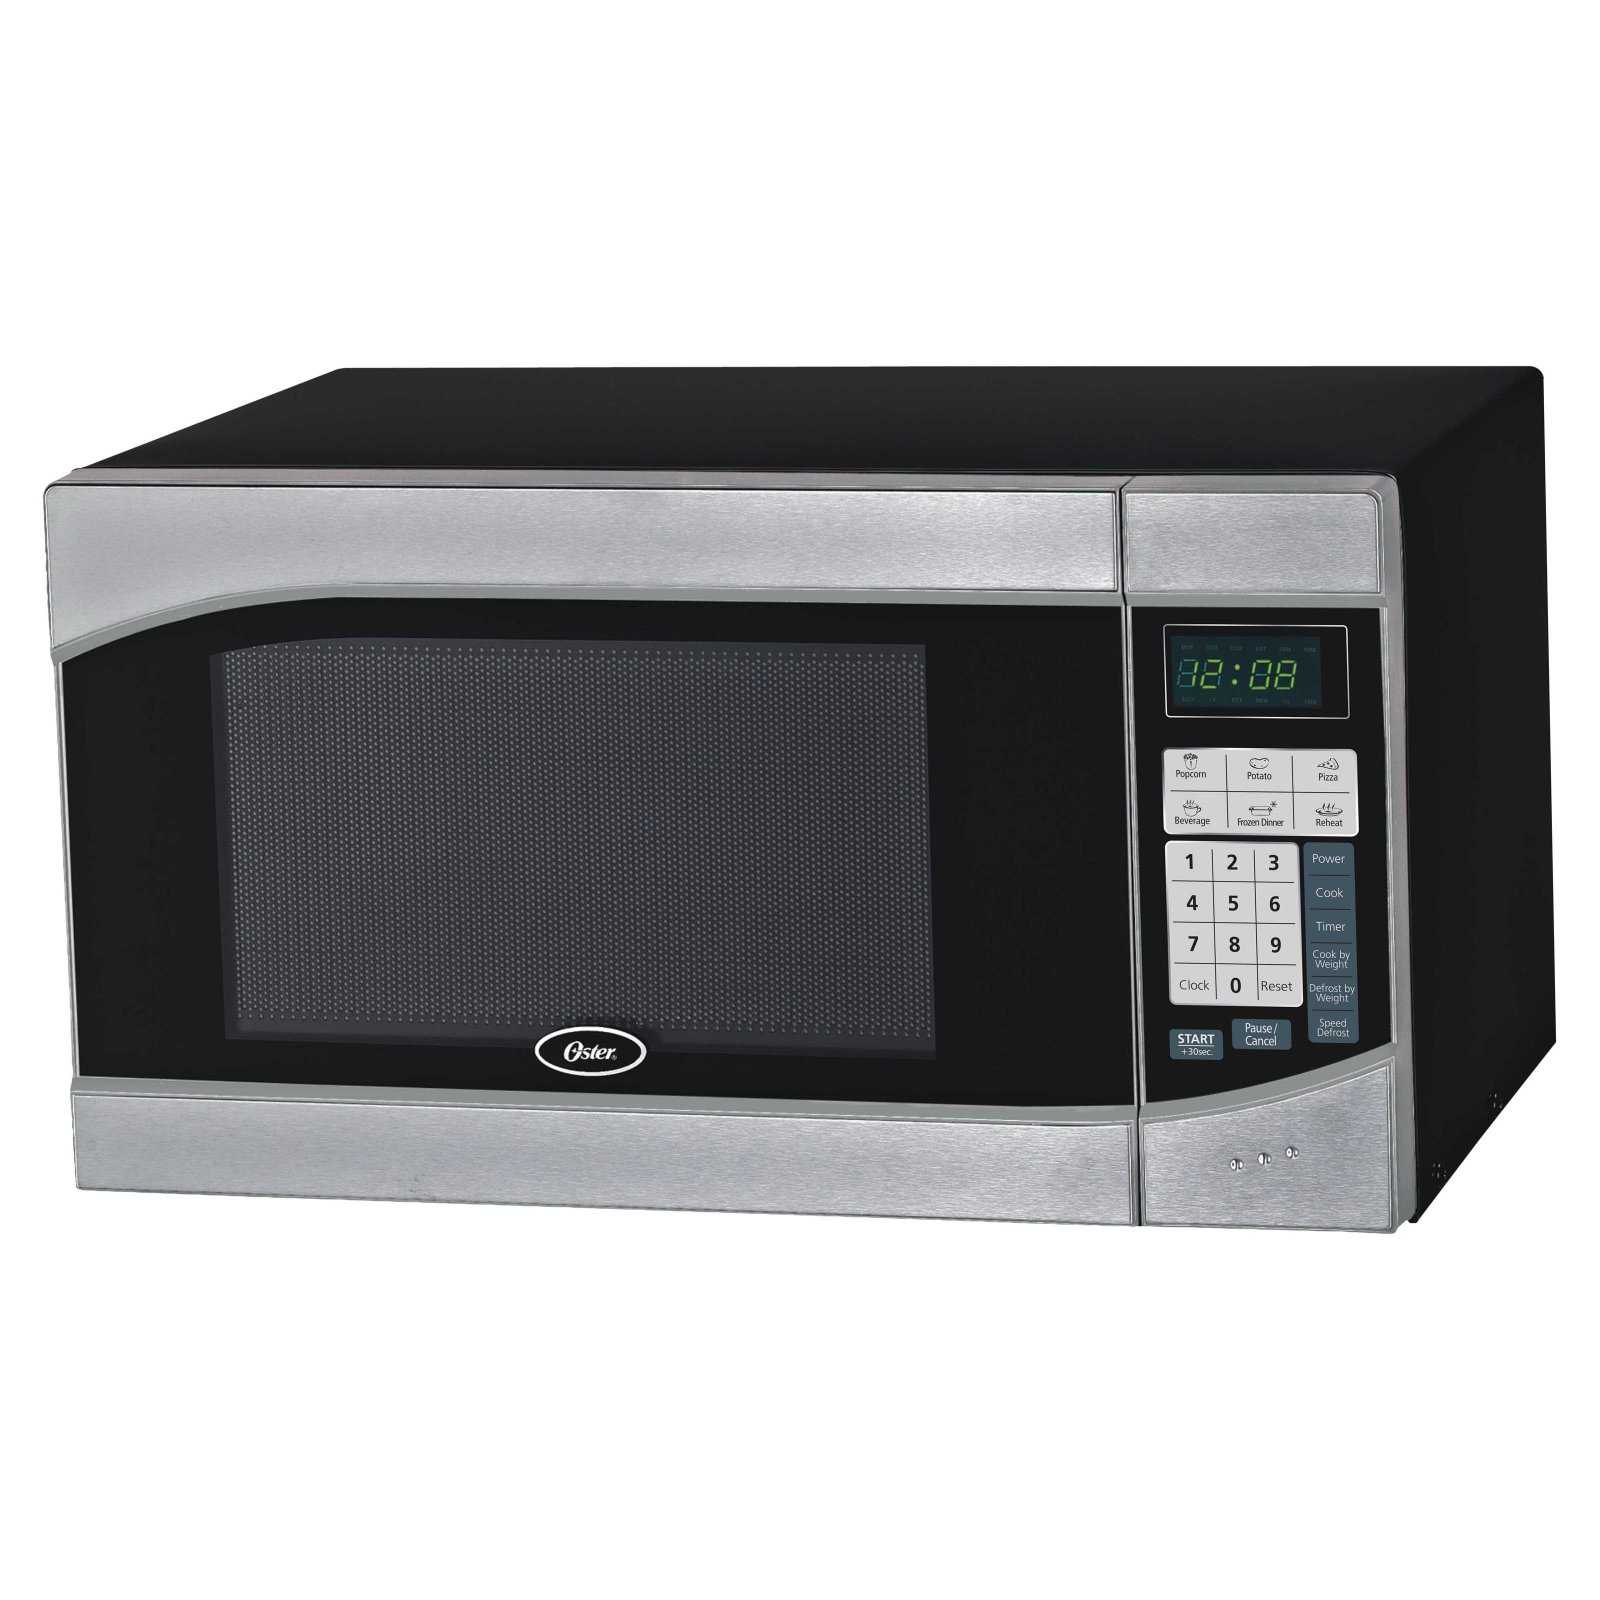 Oster 0.9 Cubic Foot Digital Microwave Oven, Stainless/Black